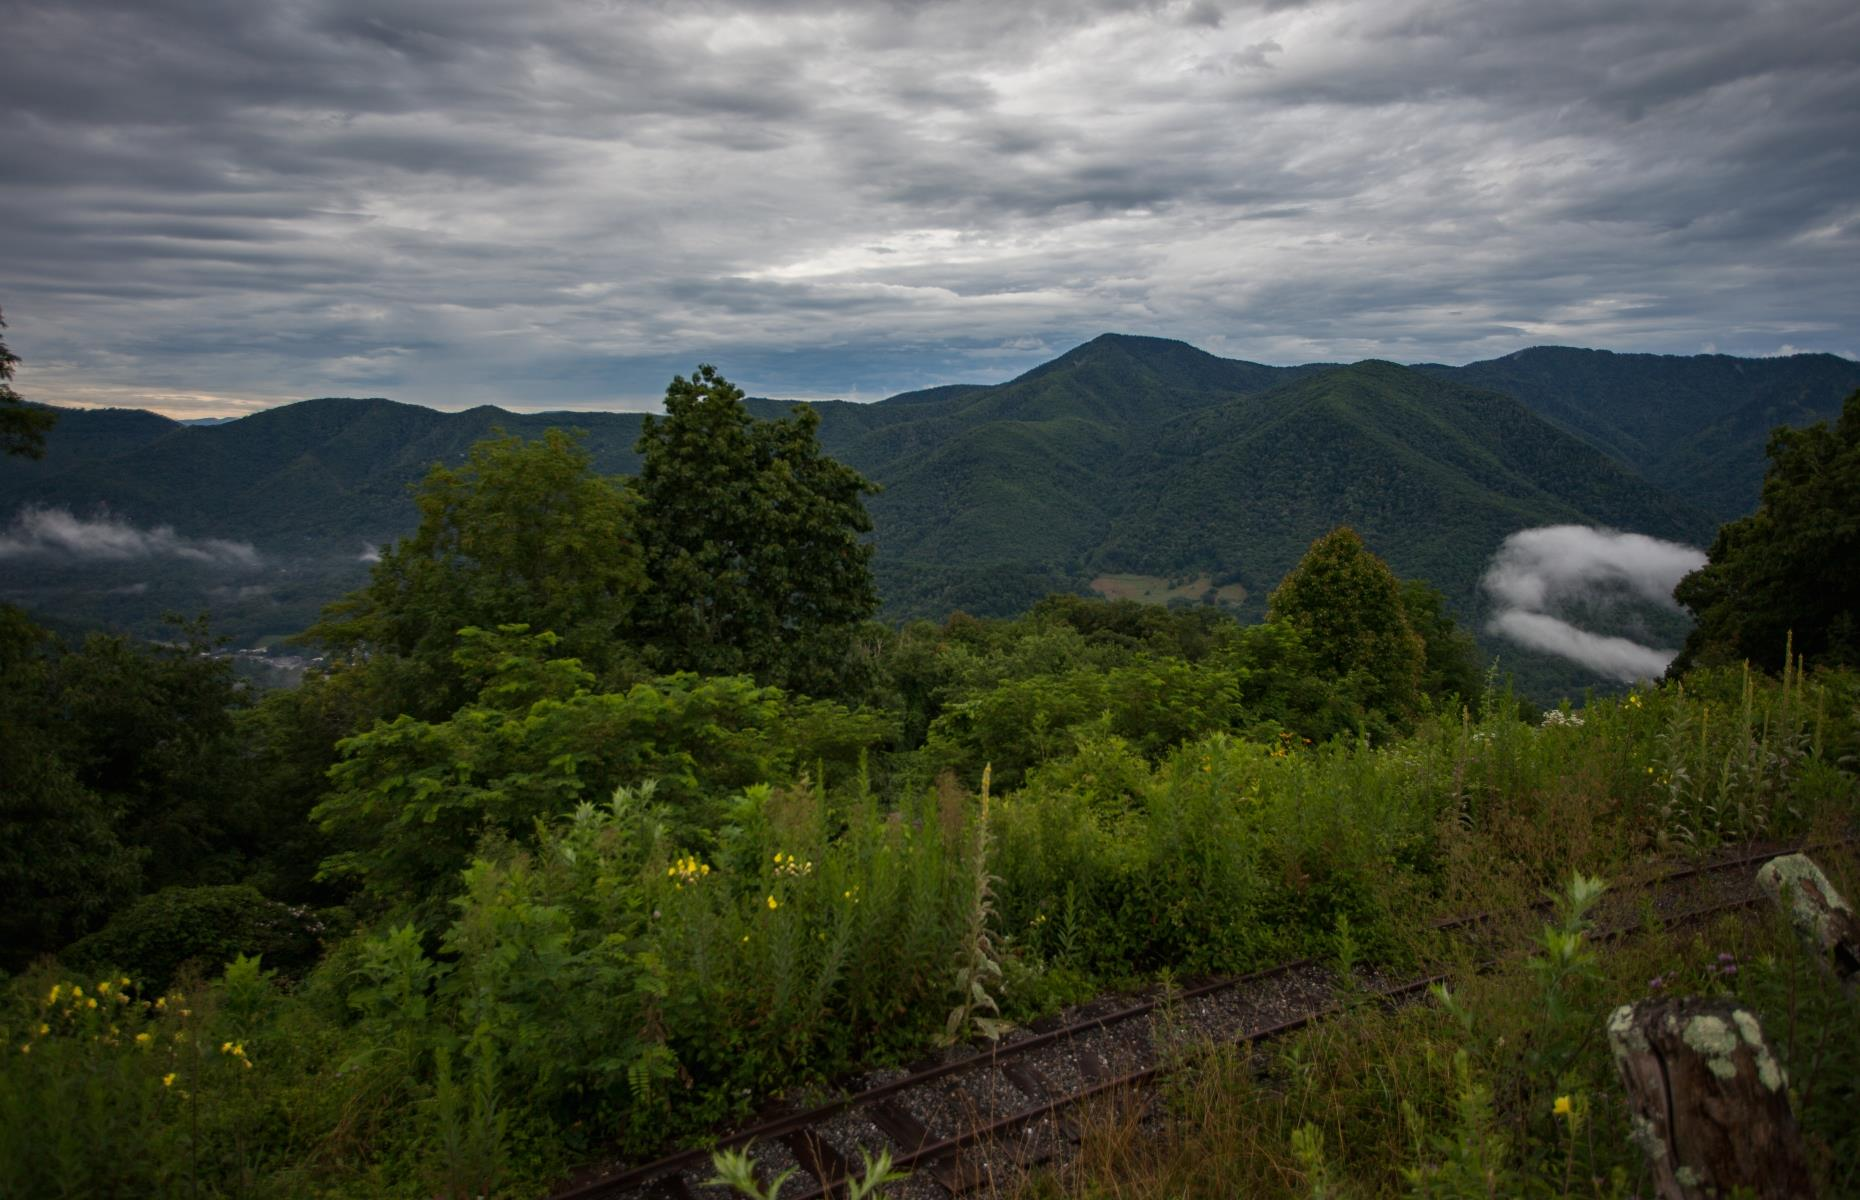 Slide 6 of 28: To visit the park, passengers had to board a double incline railway to the top of Buck Mountain. The exciting journey included multiple slopes towards the peak, varying from 30 to 77 degrees in steepness, and afforded picturesque views overlooking Maggie Valley.